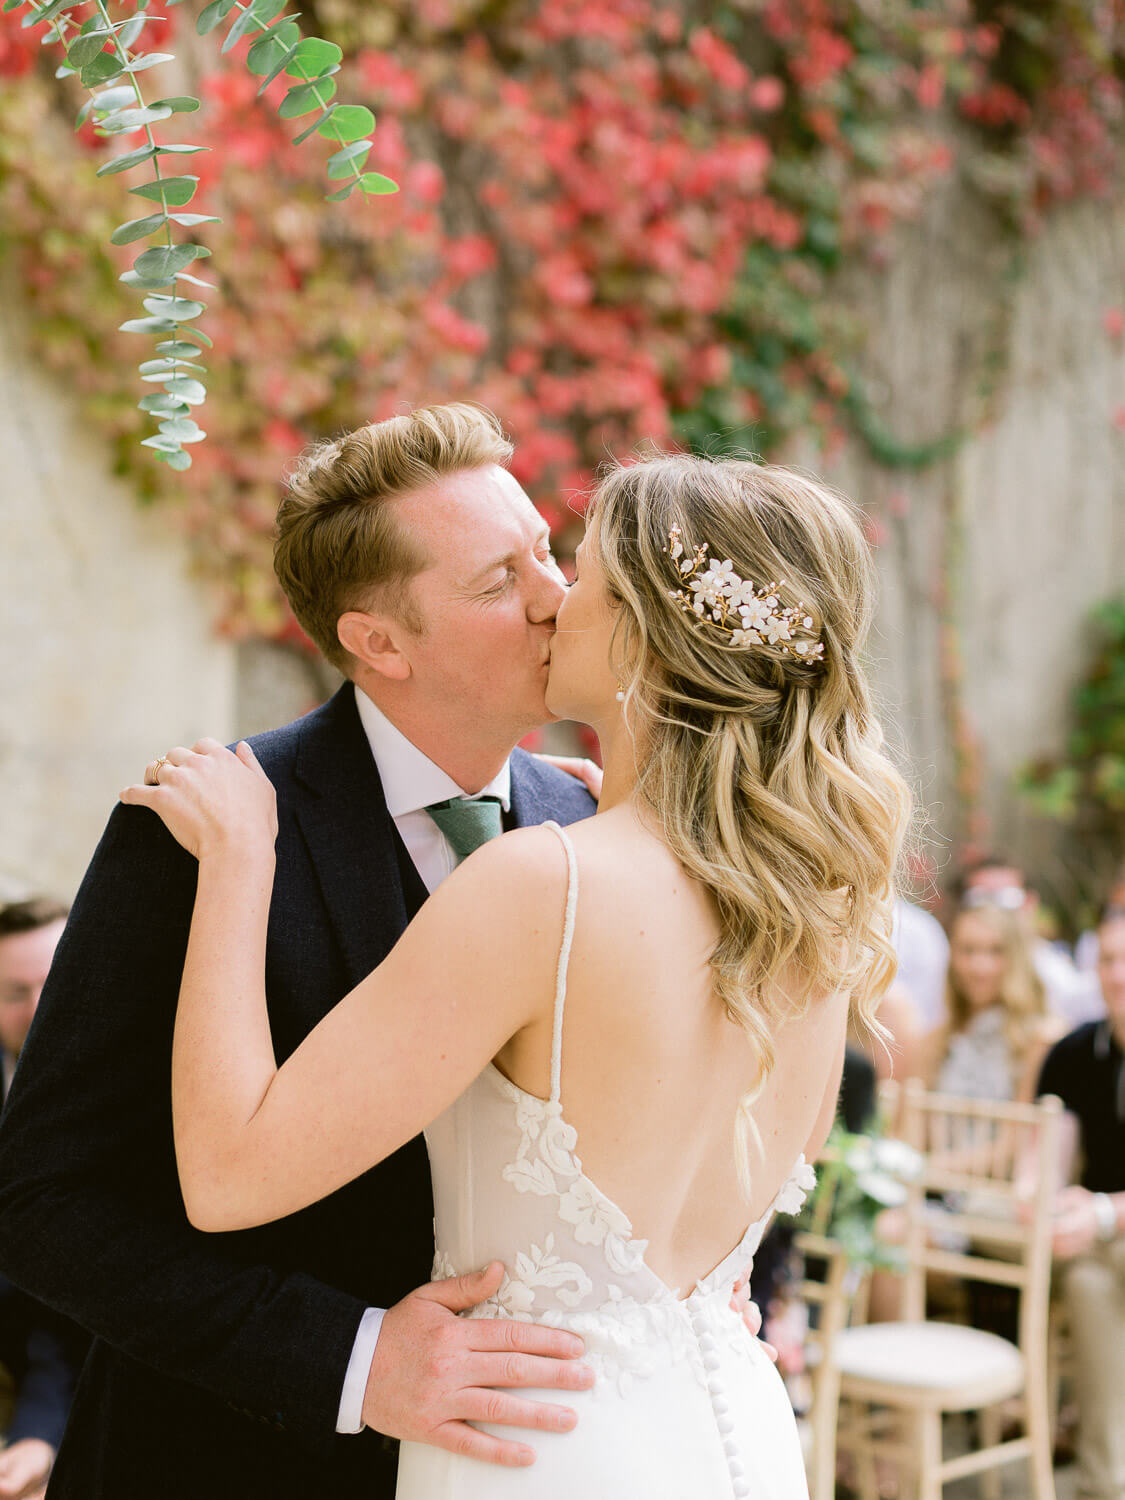 couple's first kiss during a wedding ceremony by Portugal Wedding Photographer